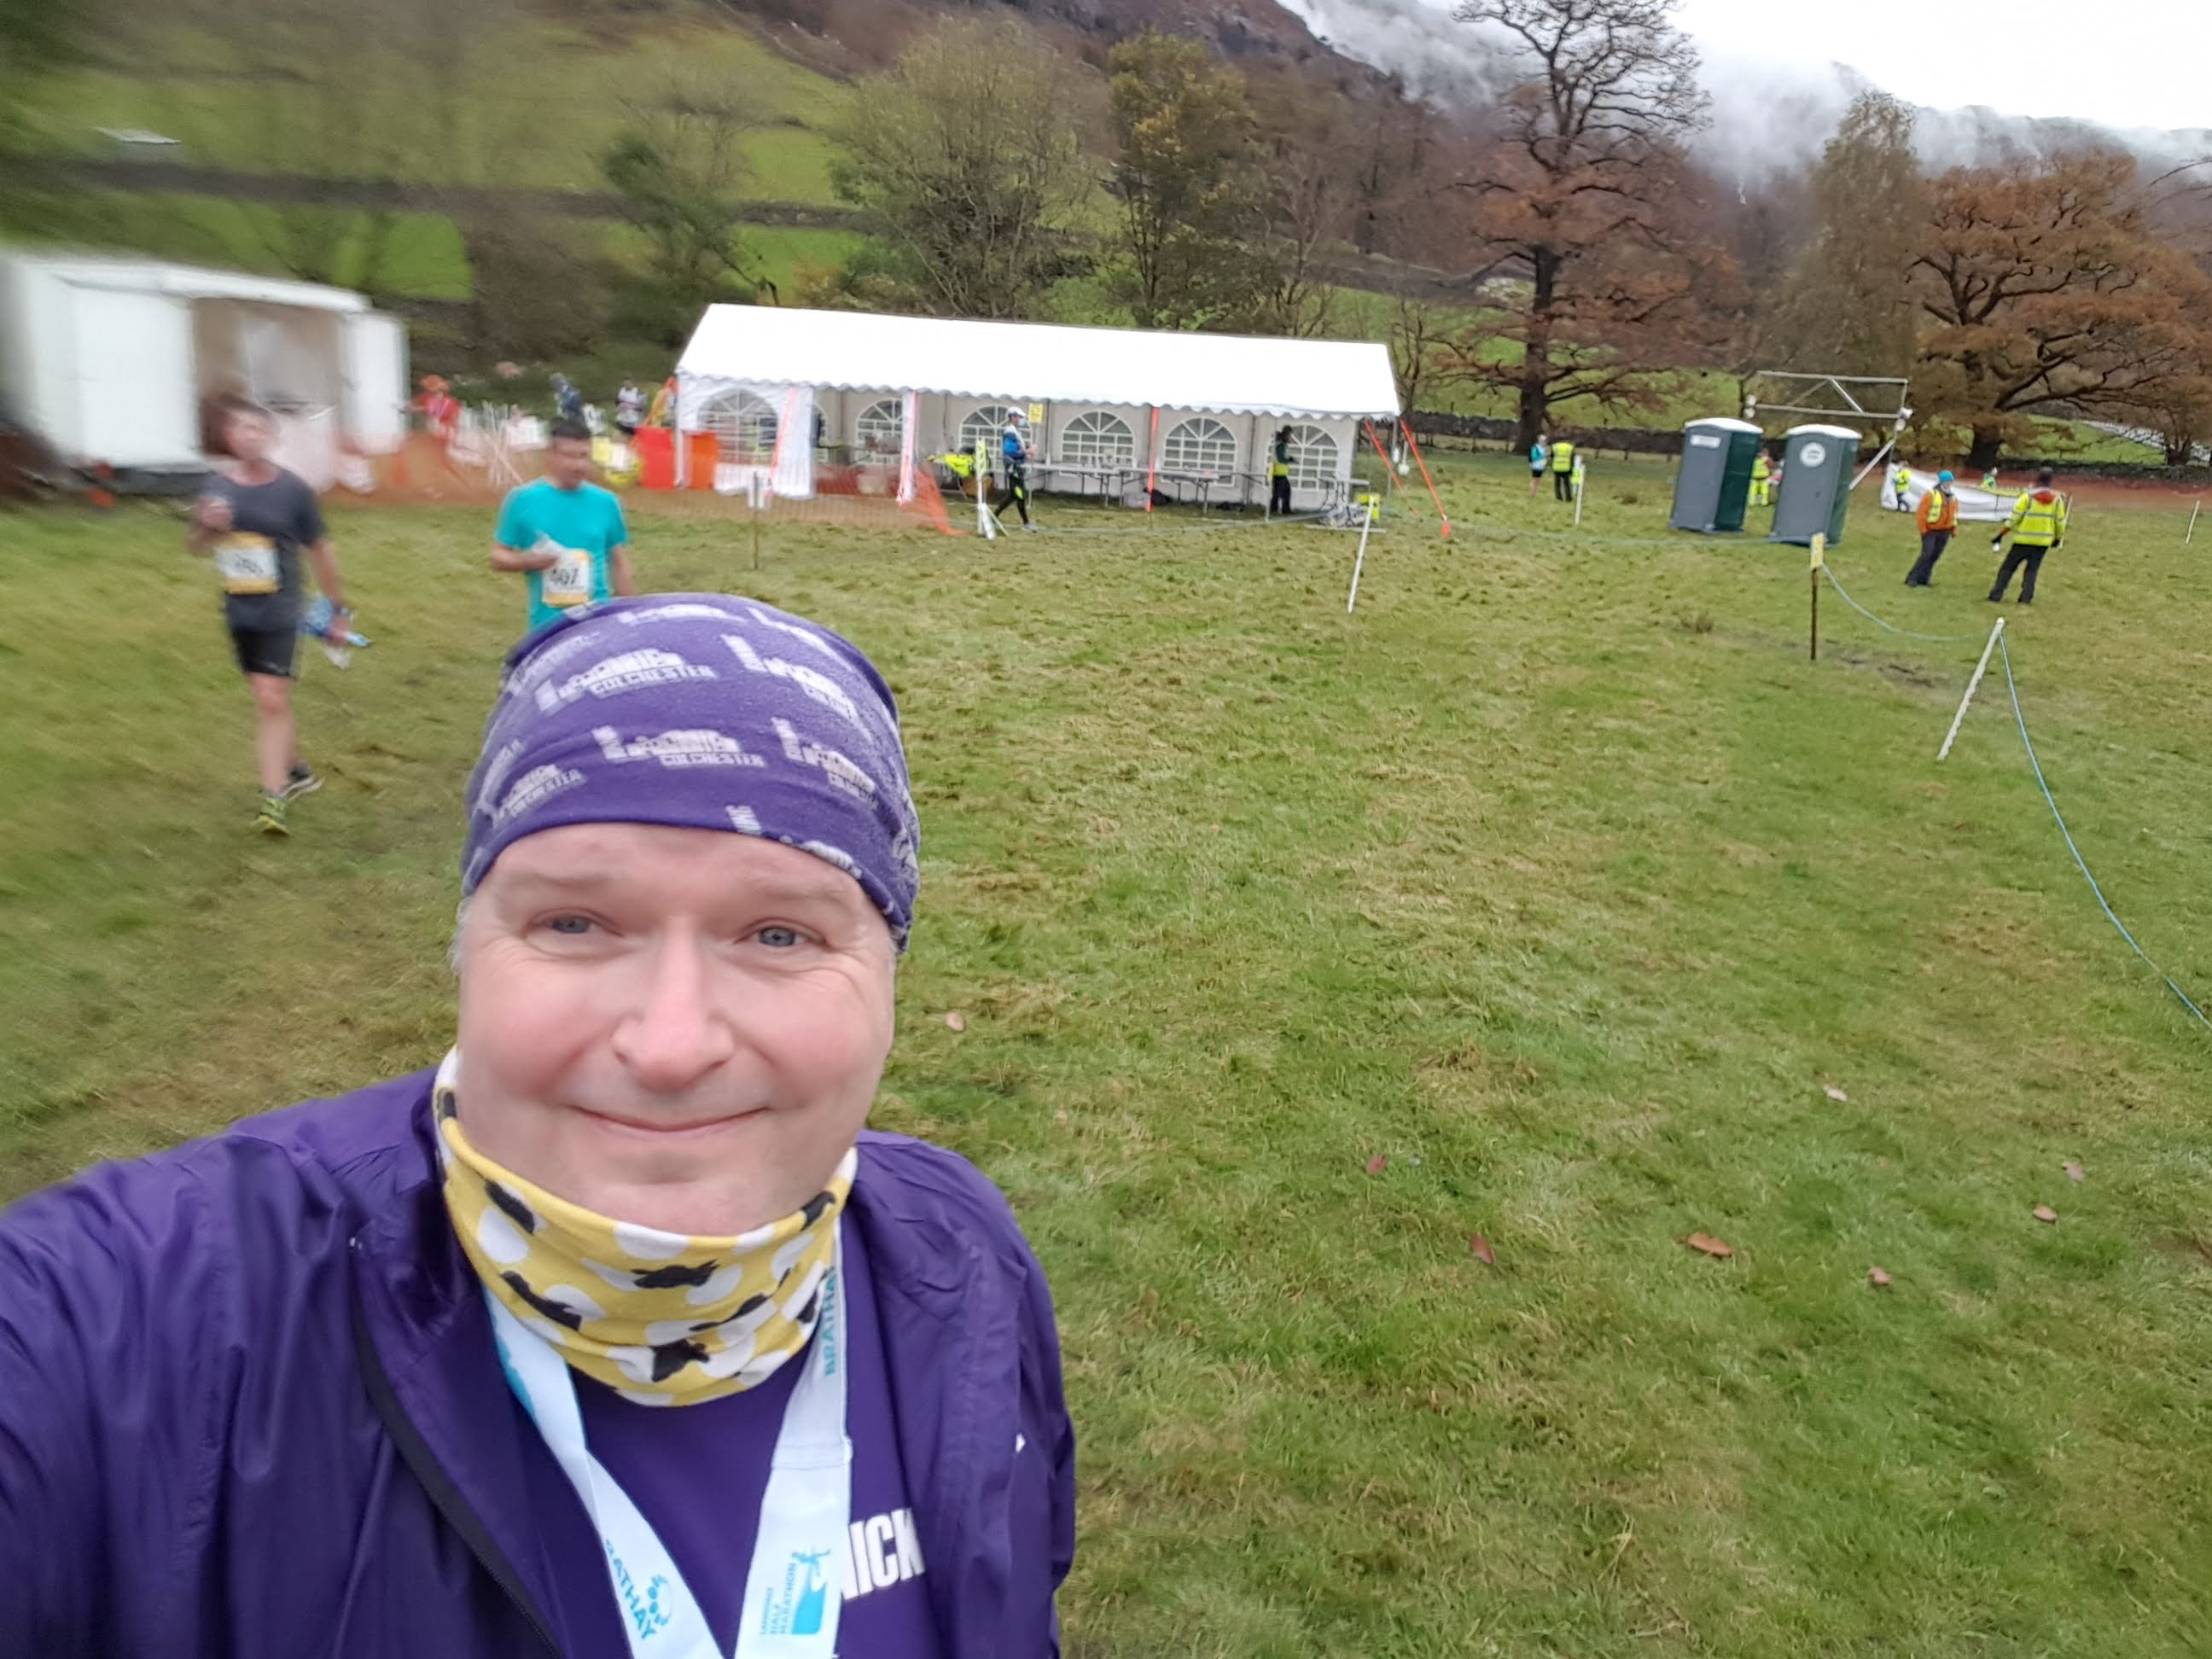 A selfie of a man (the author) in a purple bandanna and jacket in a field with a marquee and a pair of other runners.